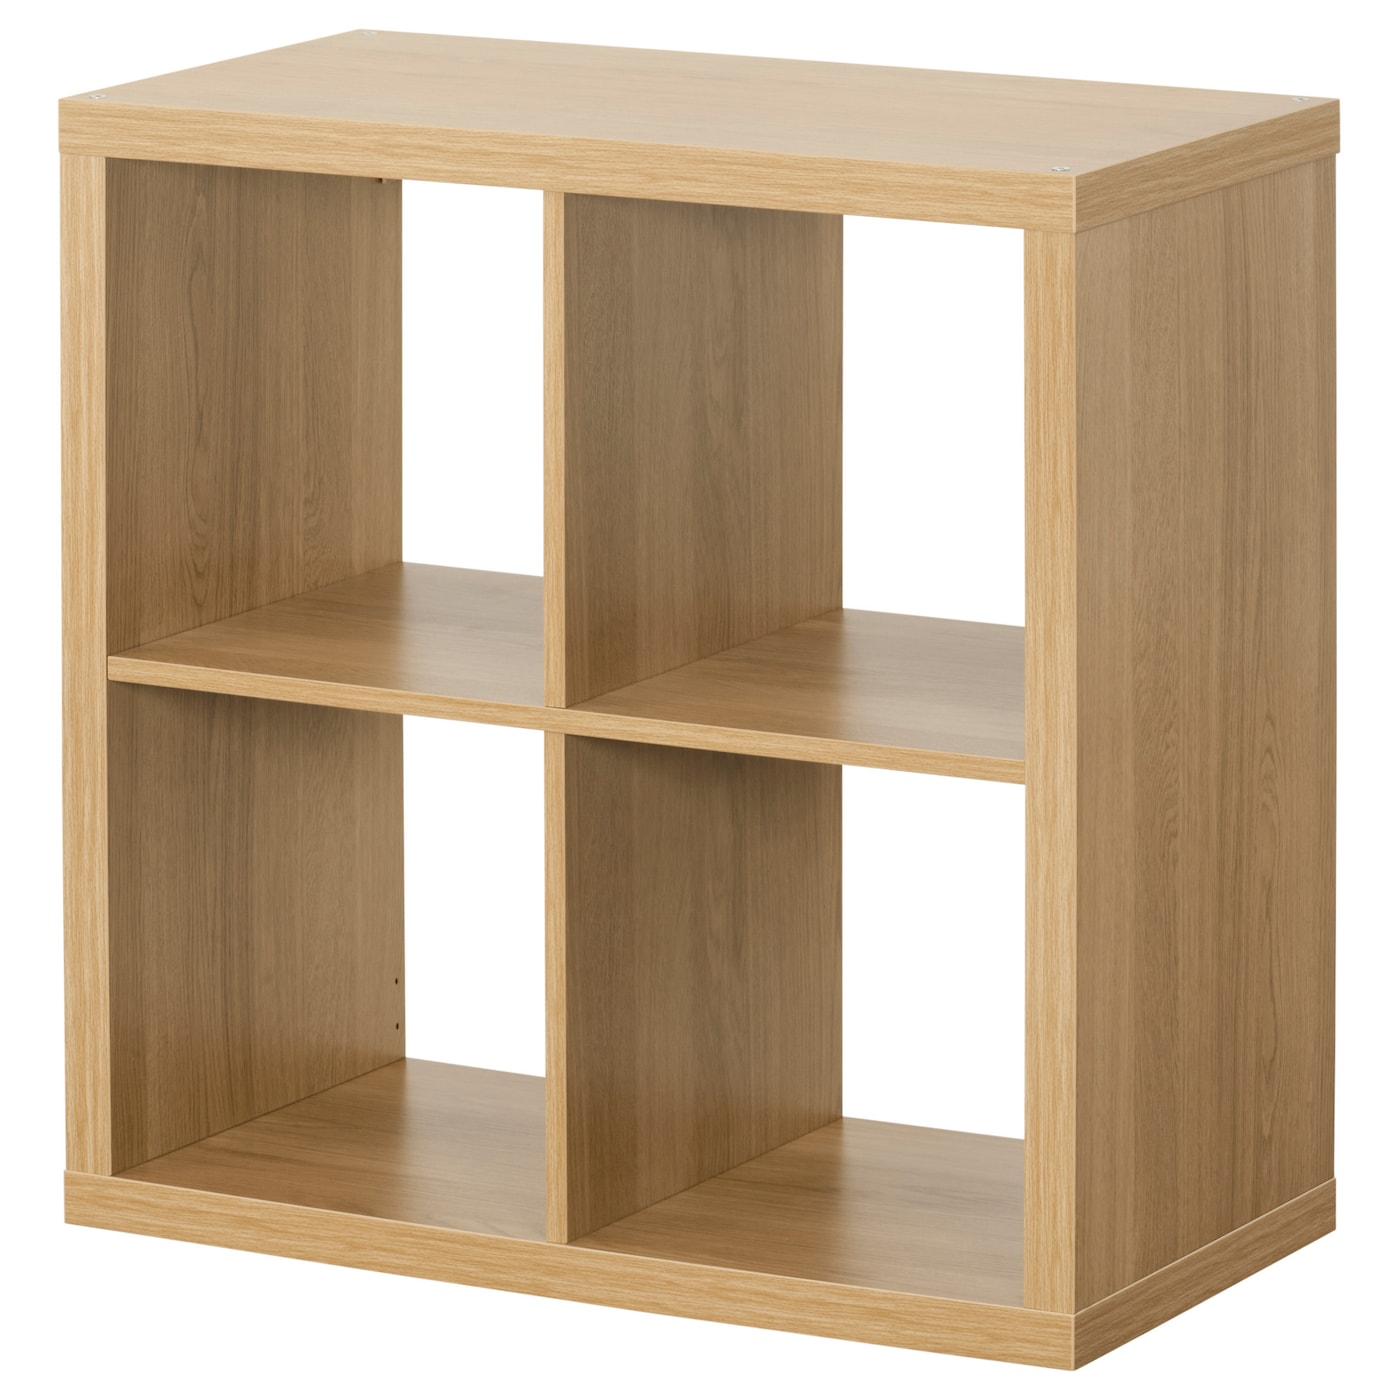 Kallax Shelving Unit Oak Effect 77 X 77 Cm Ikea